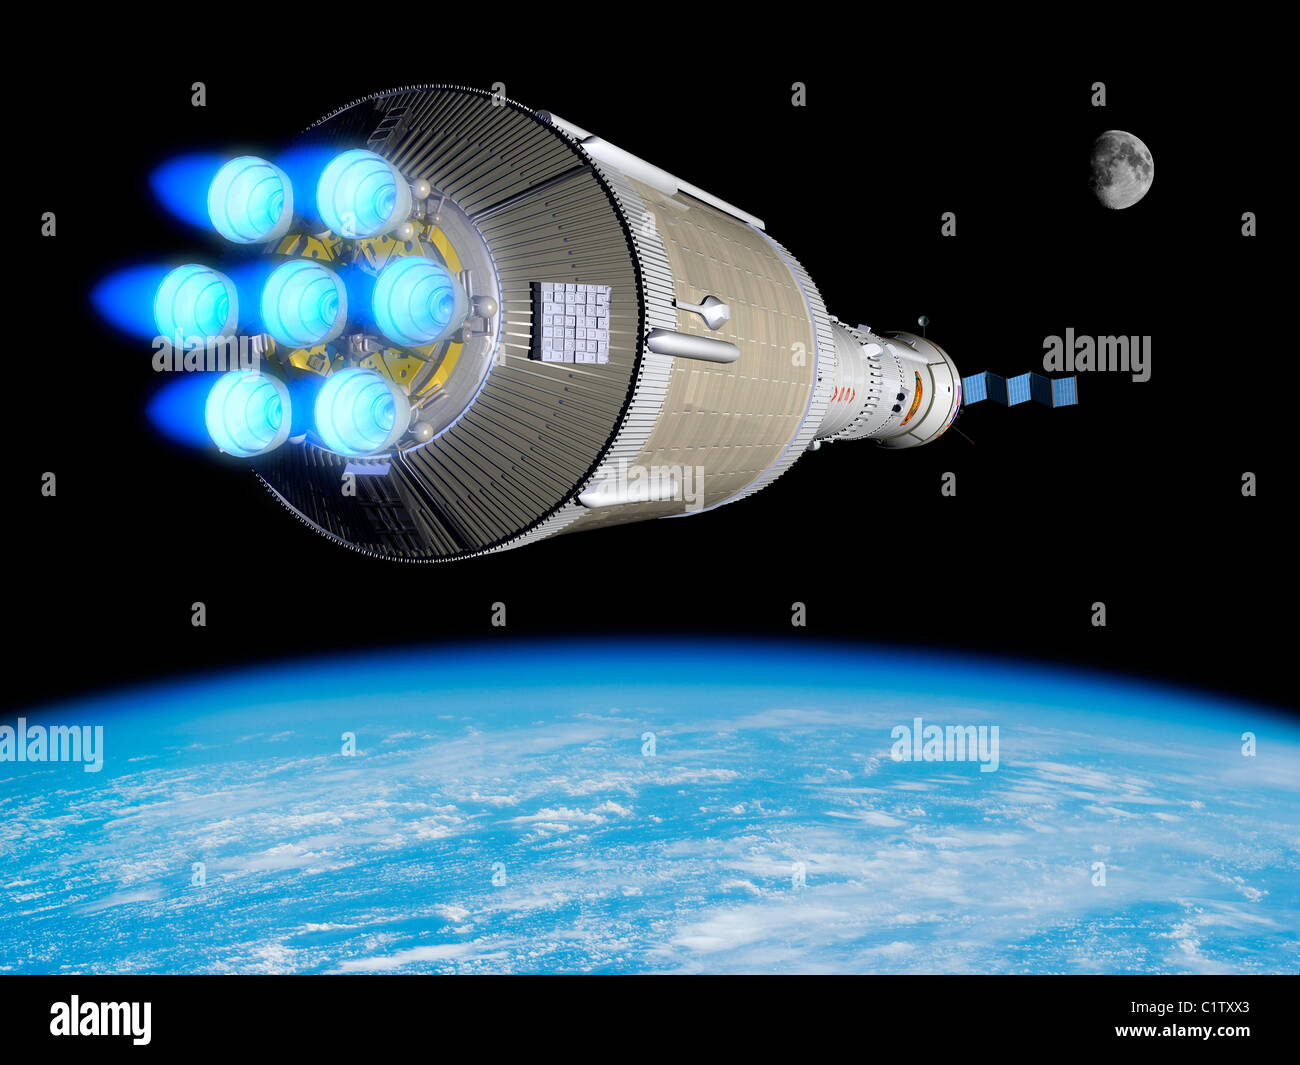 A Phobos mission rocket ignites its chemical thrusters. - Stock Image